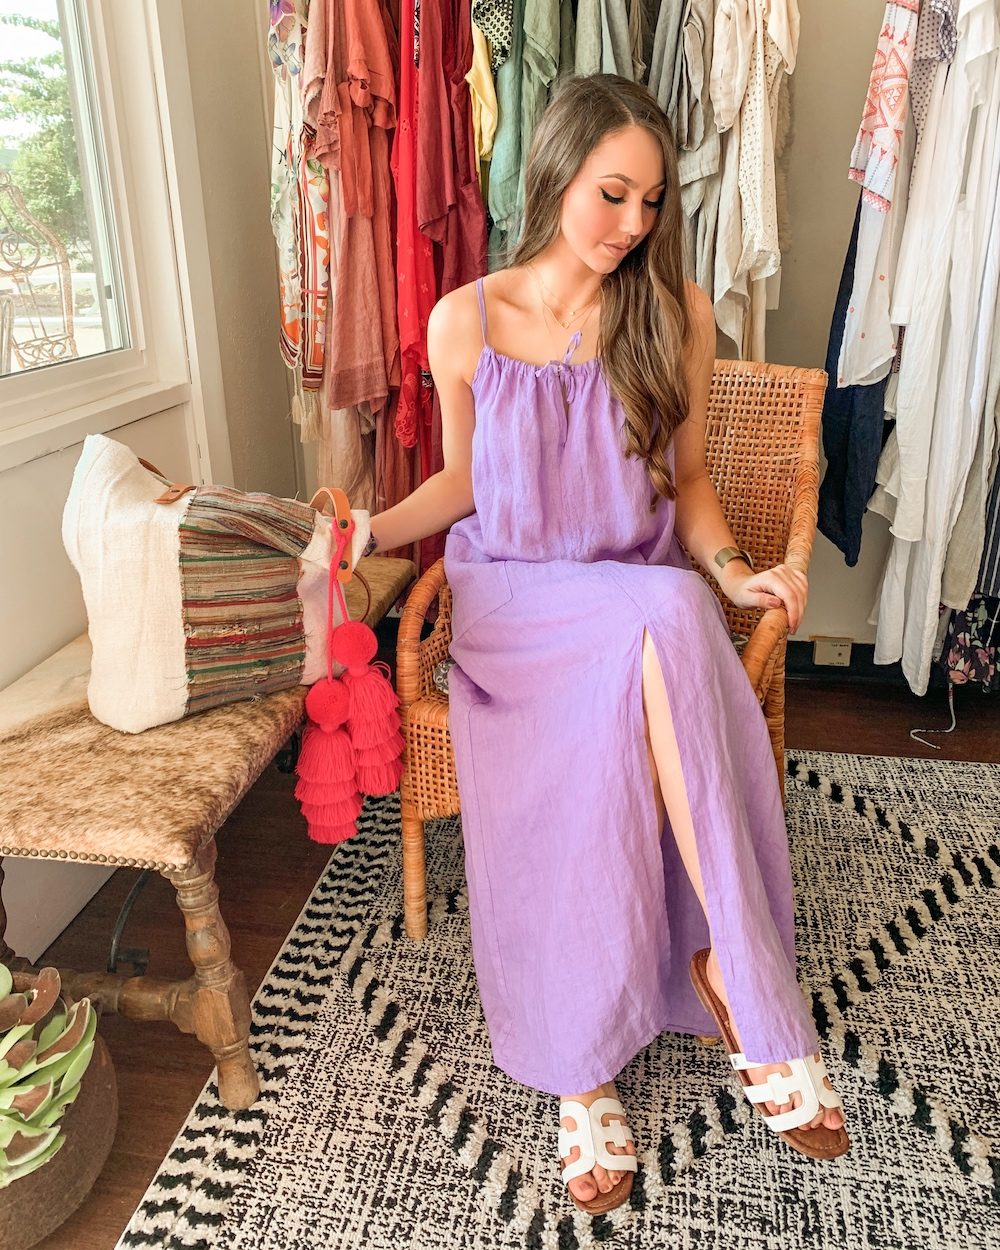 clothing boutiques costa mesa